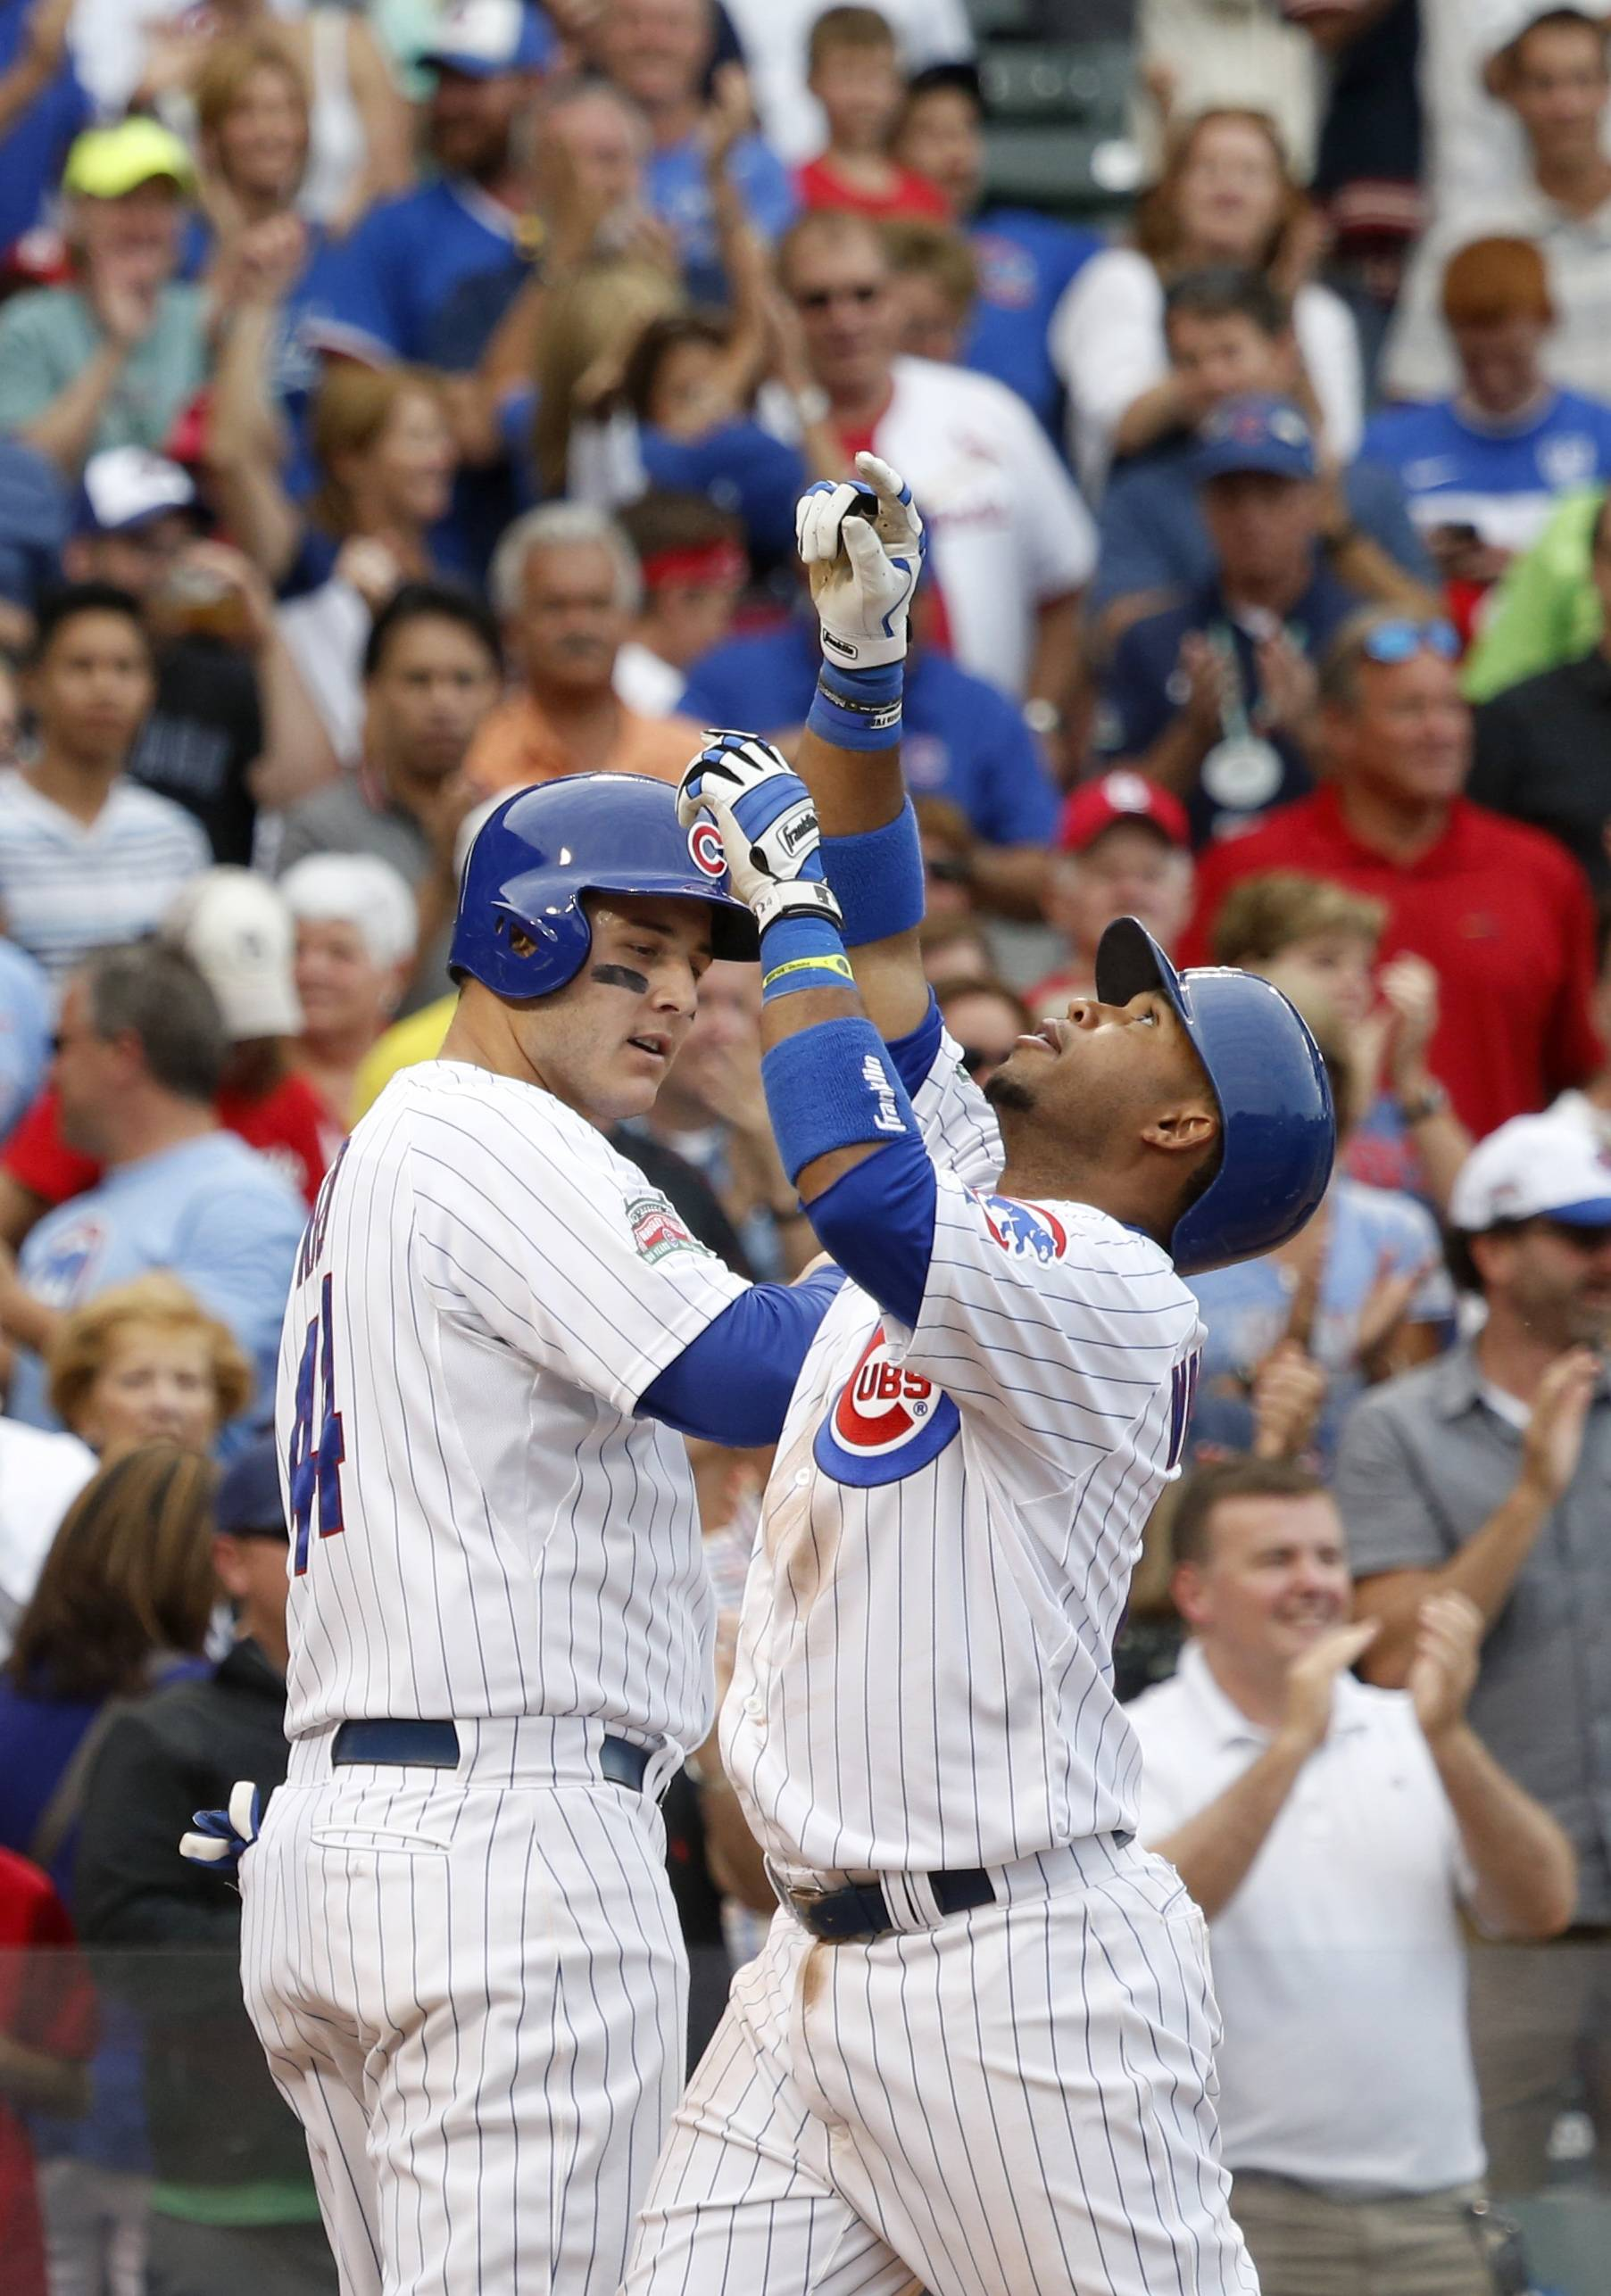 Cubs climb out of 3-0 hole and best rival Cardinals